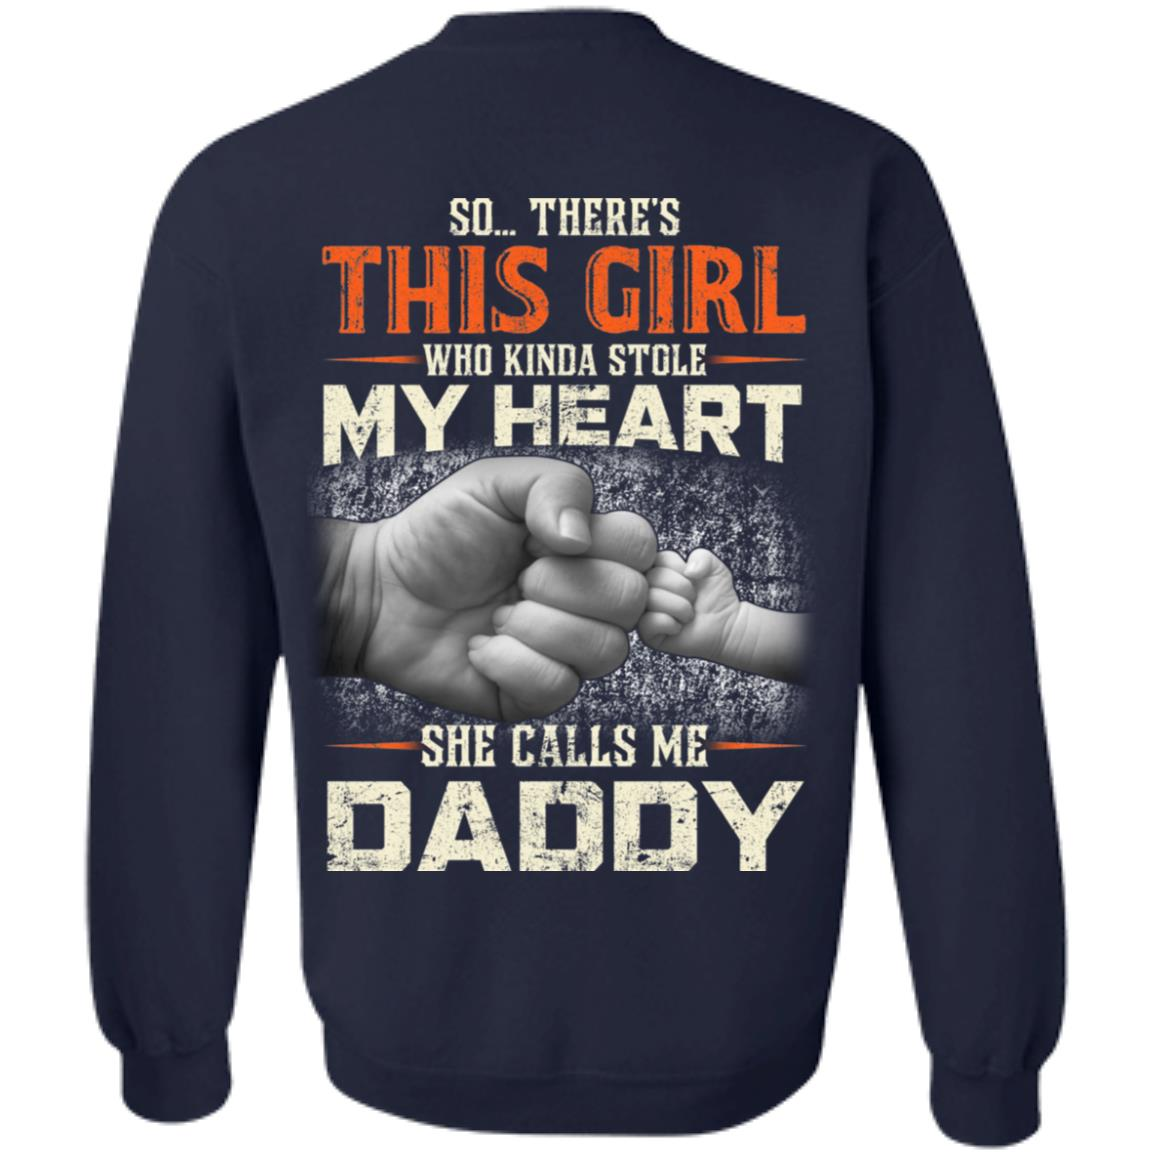 2f1c3ca7 ... So there's this Girl who kinda stole my heart she calls me Daddy ...